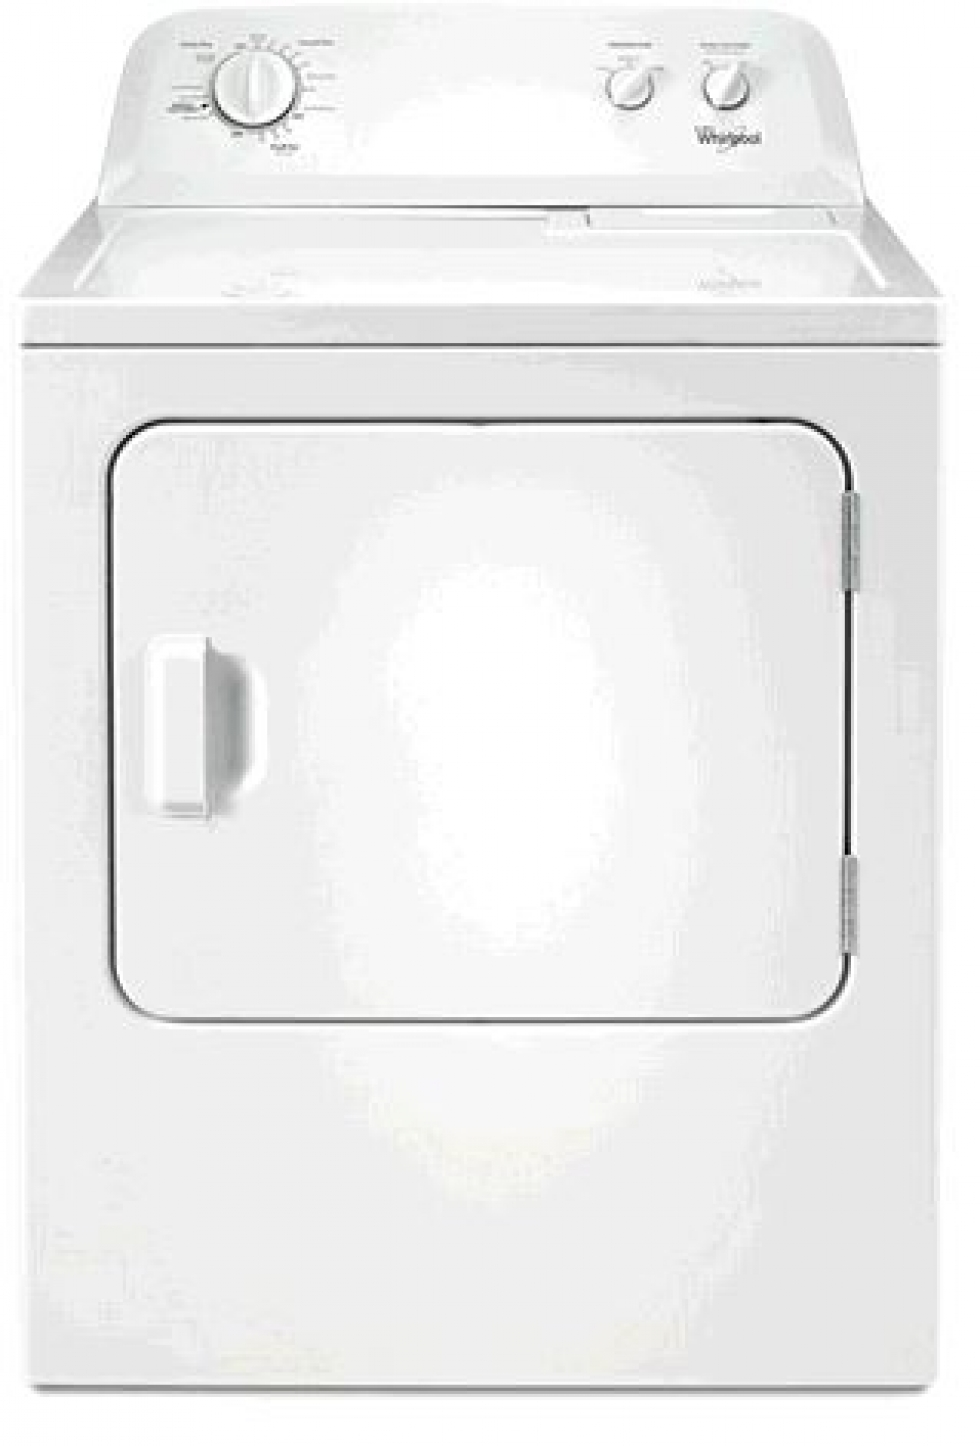 7 0 Cu Ft Top Load Paired Dryer With The Wrinkle Shield